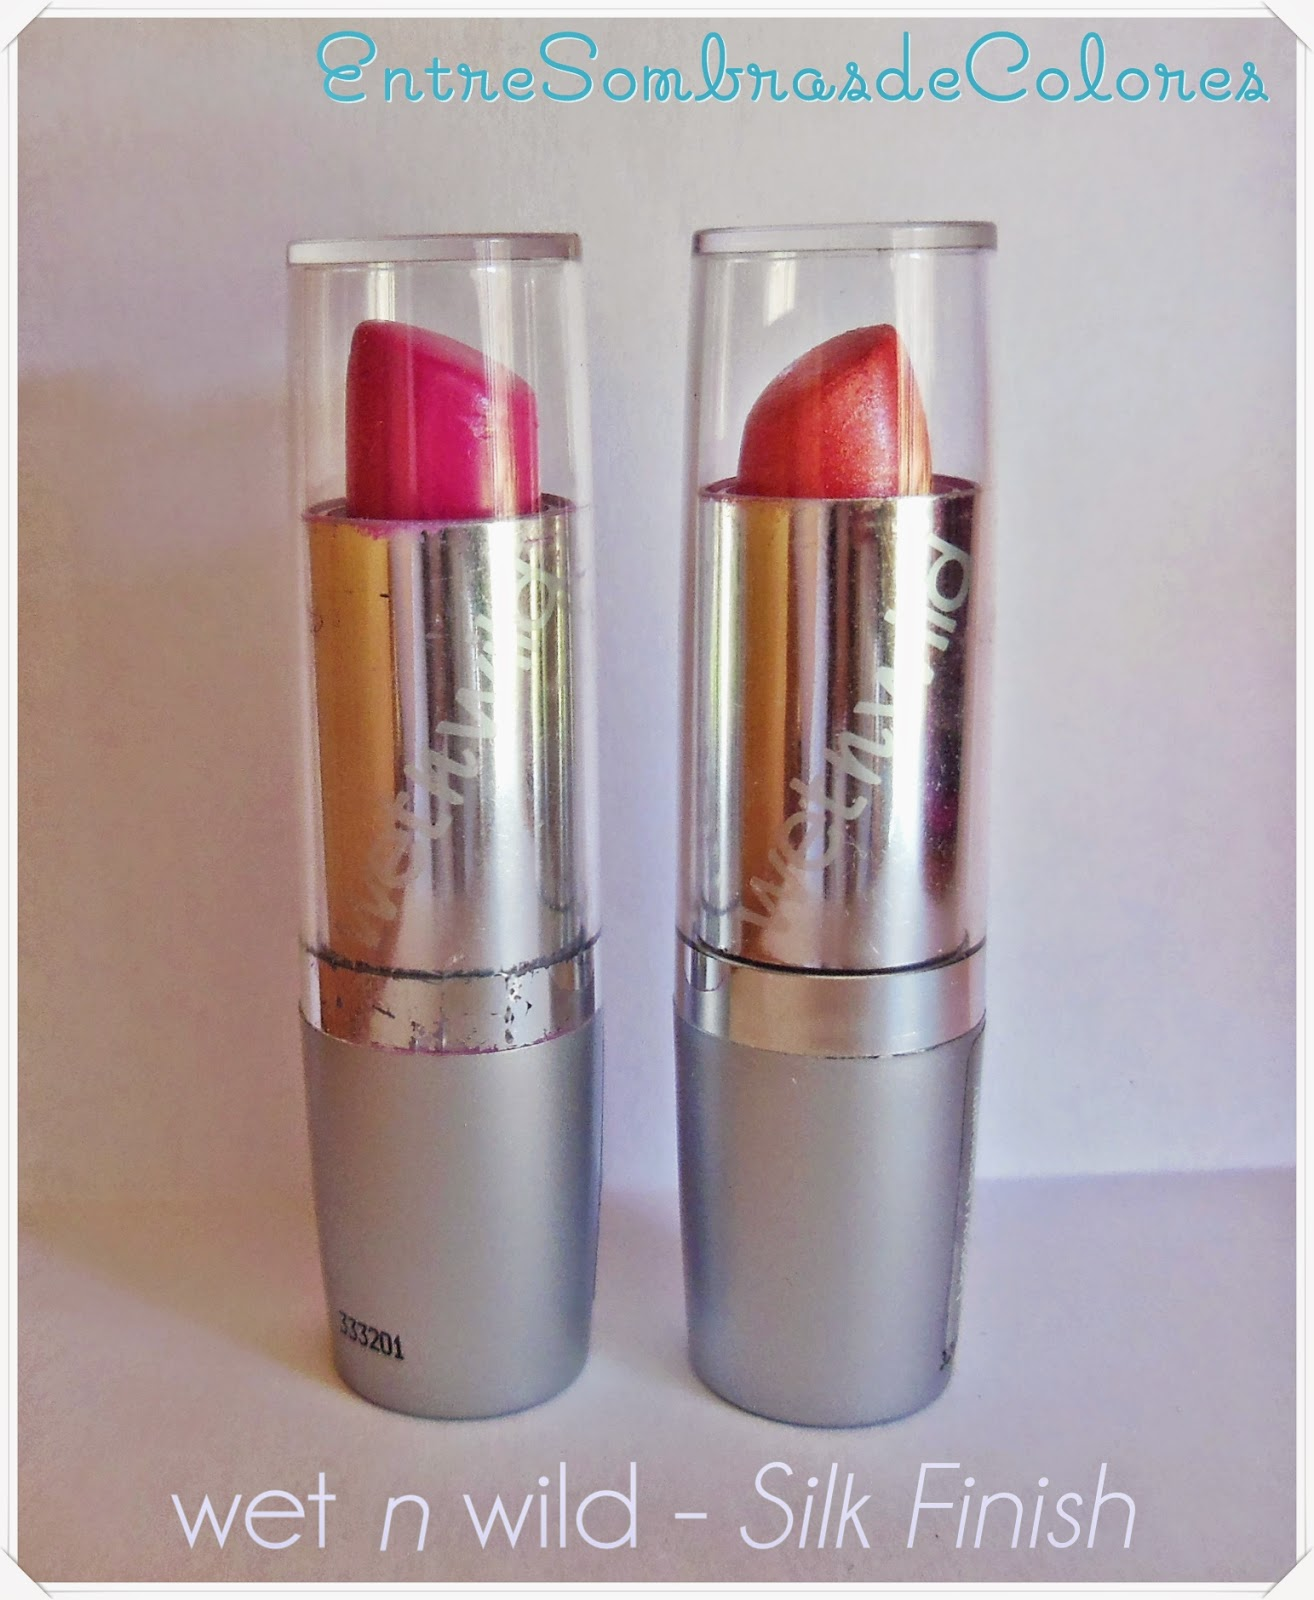 labiales Silk finish Wet n Wild